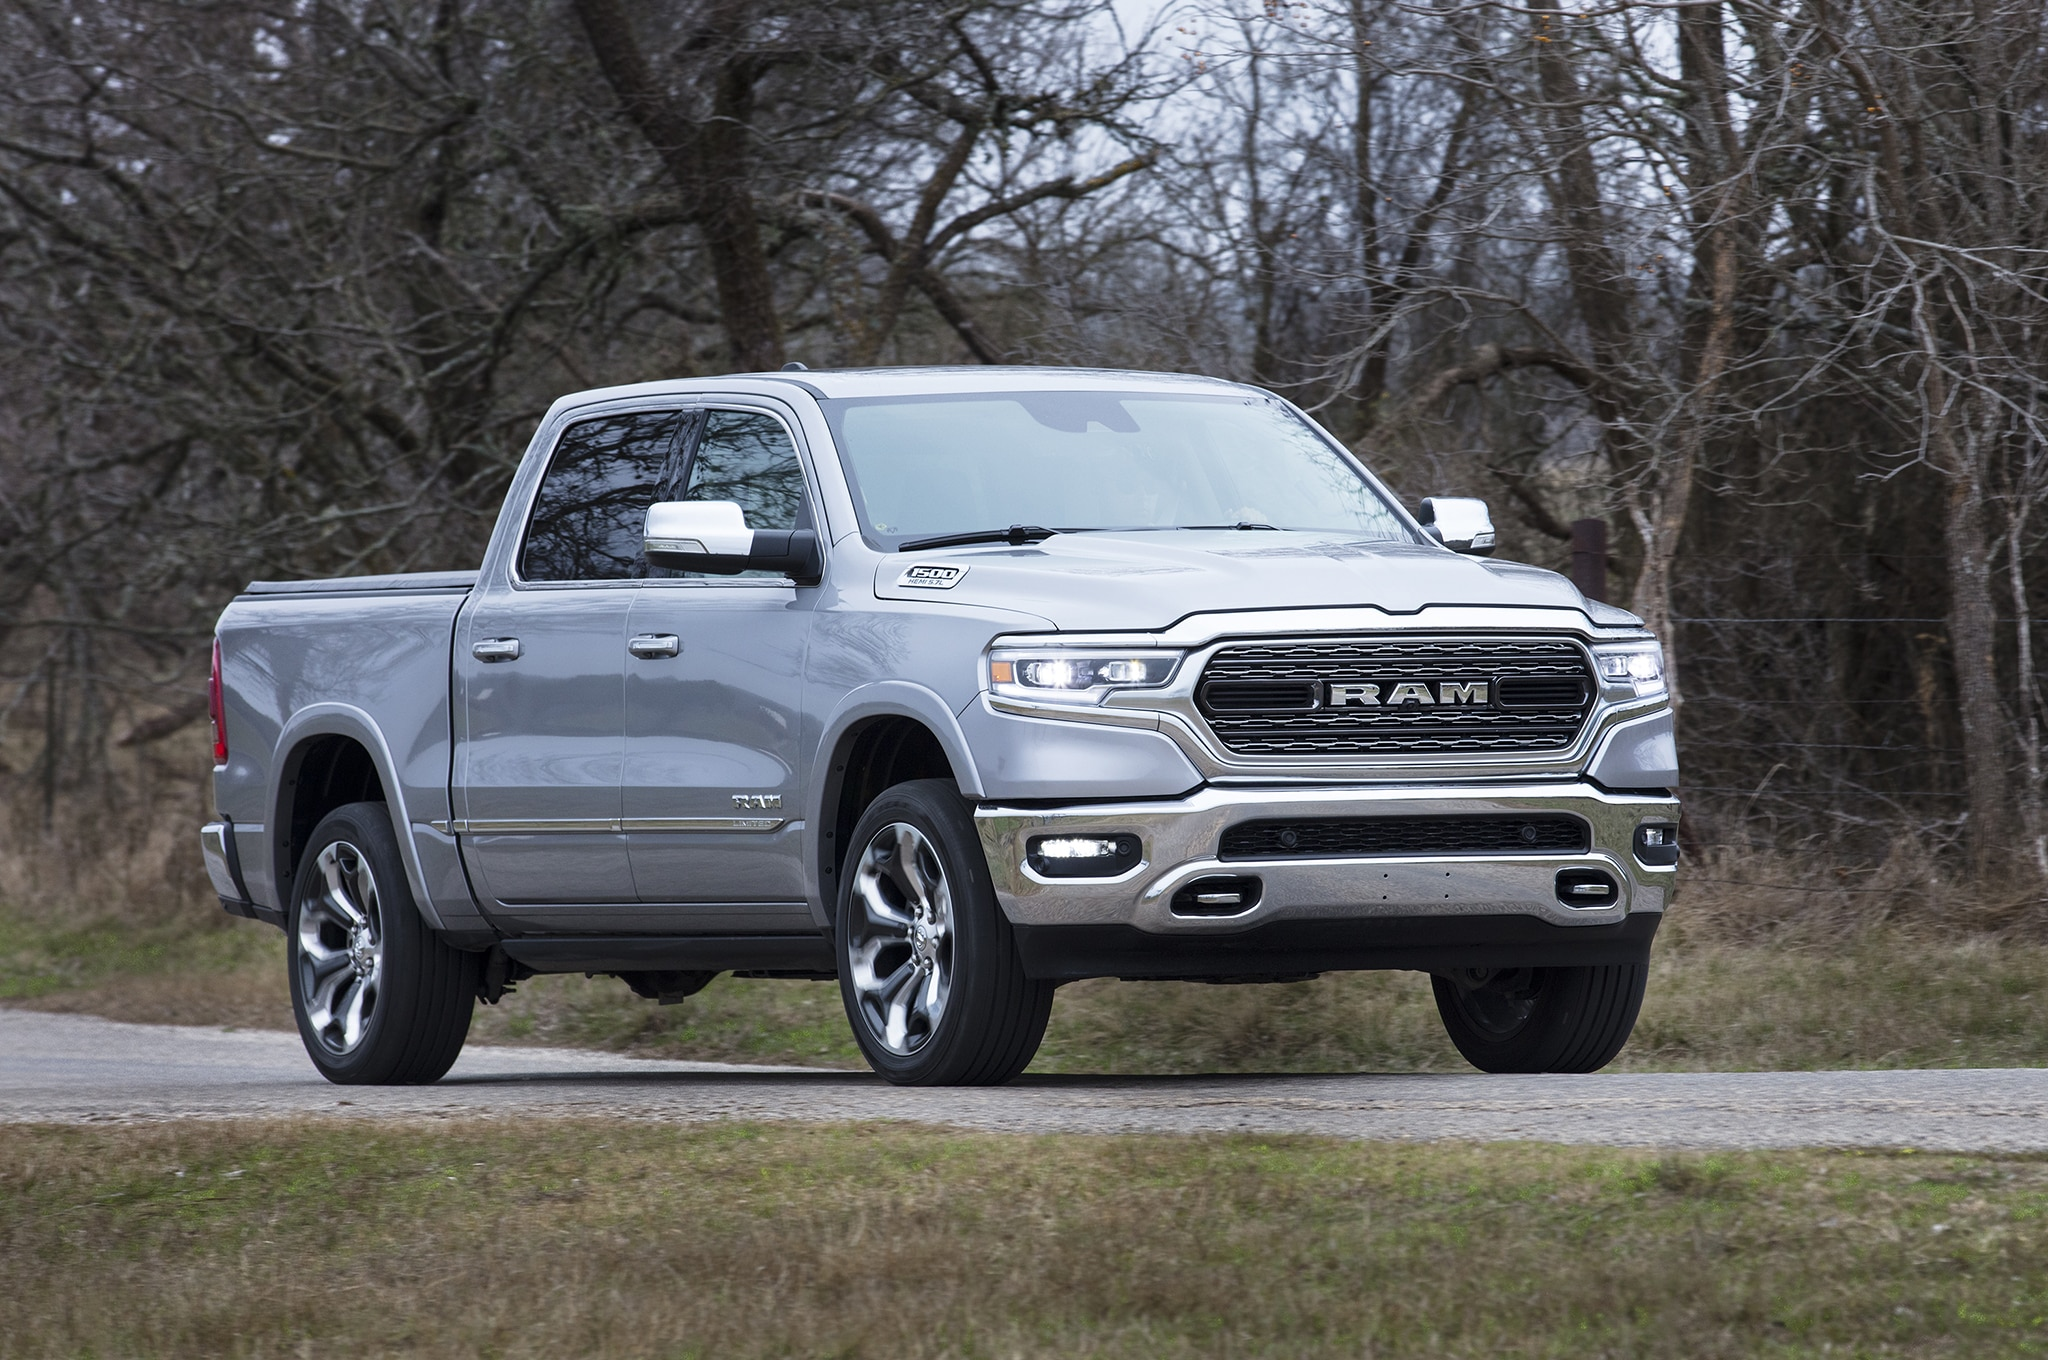 2019 Ram 1500 Limited Front Three Quarter 02